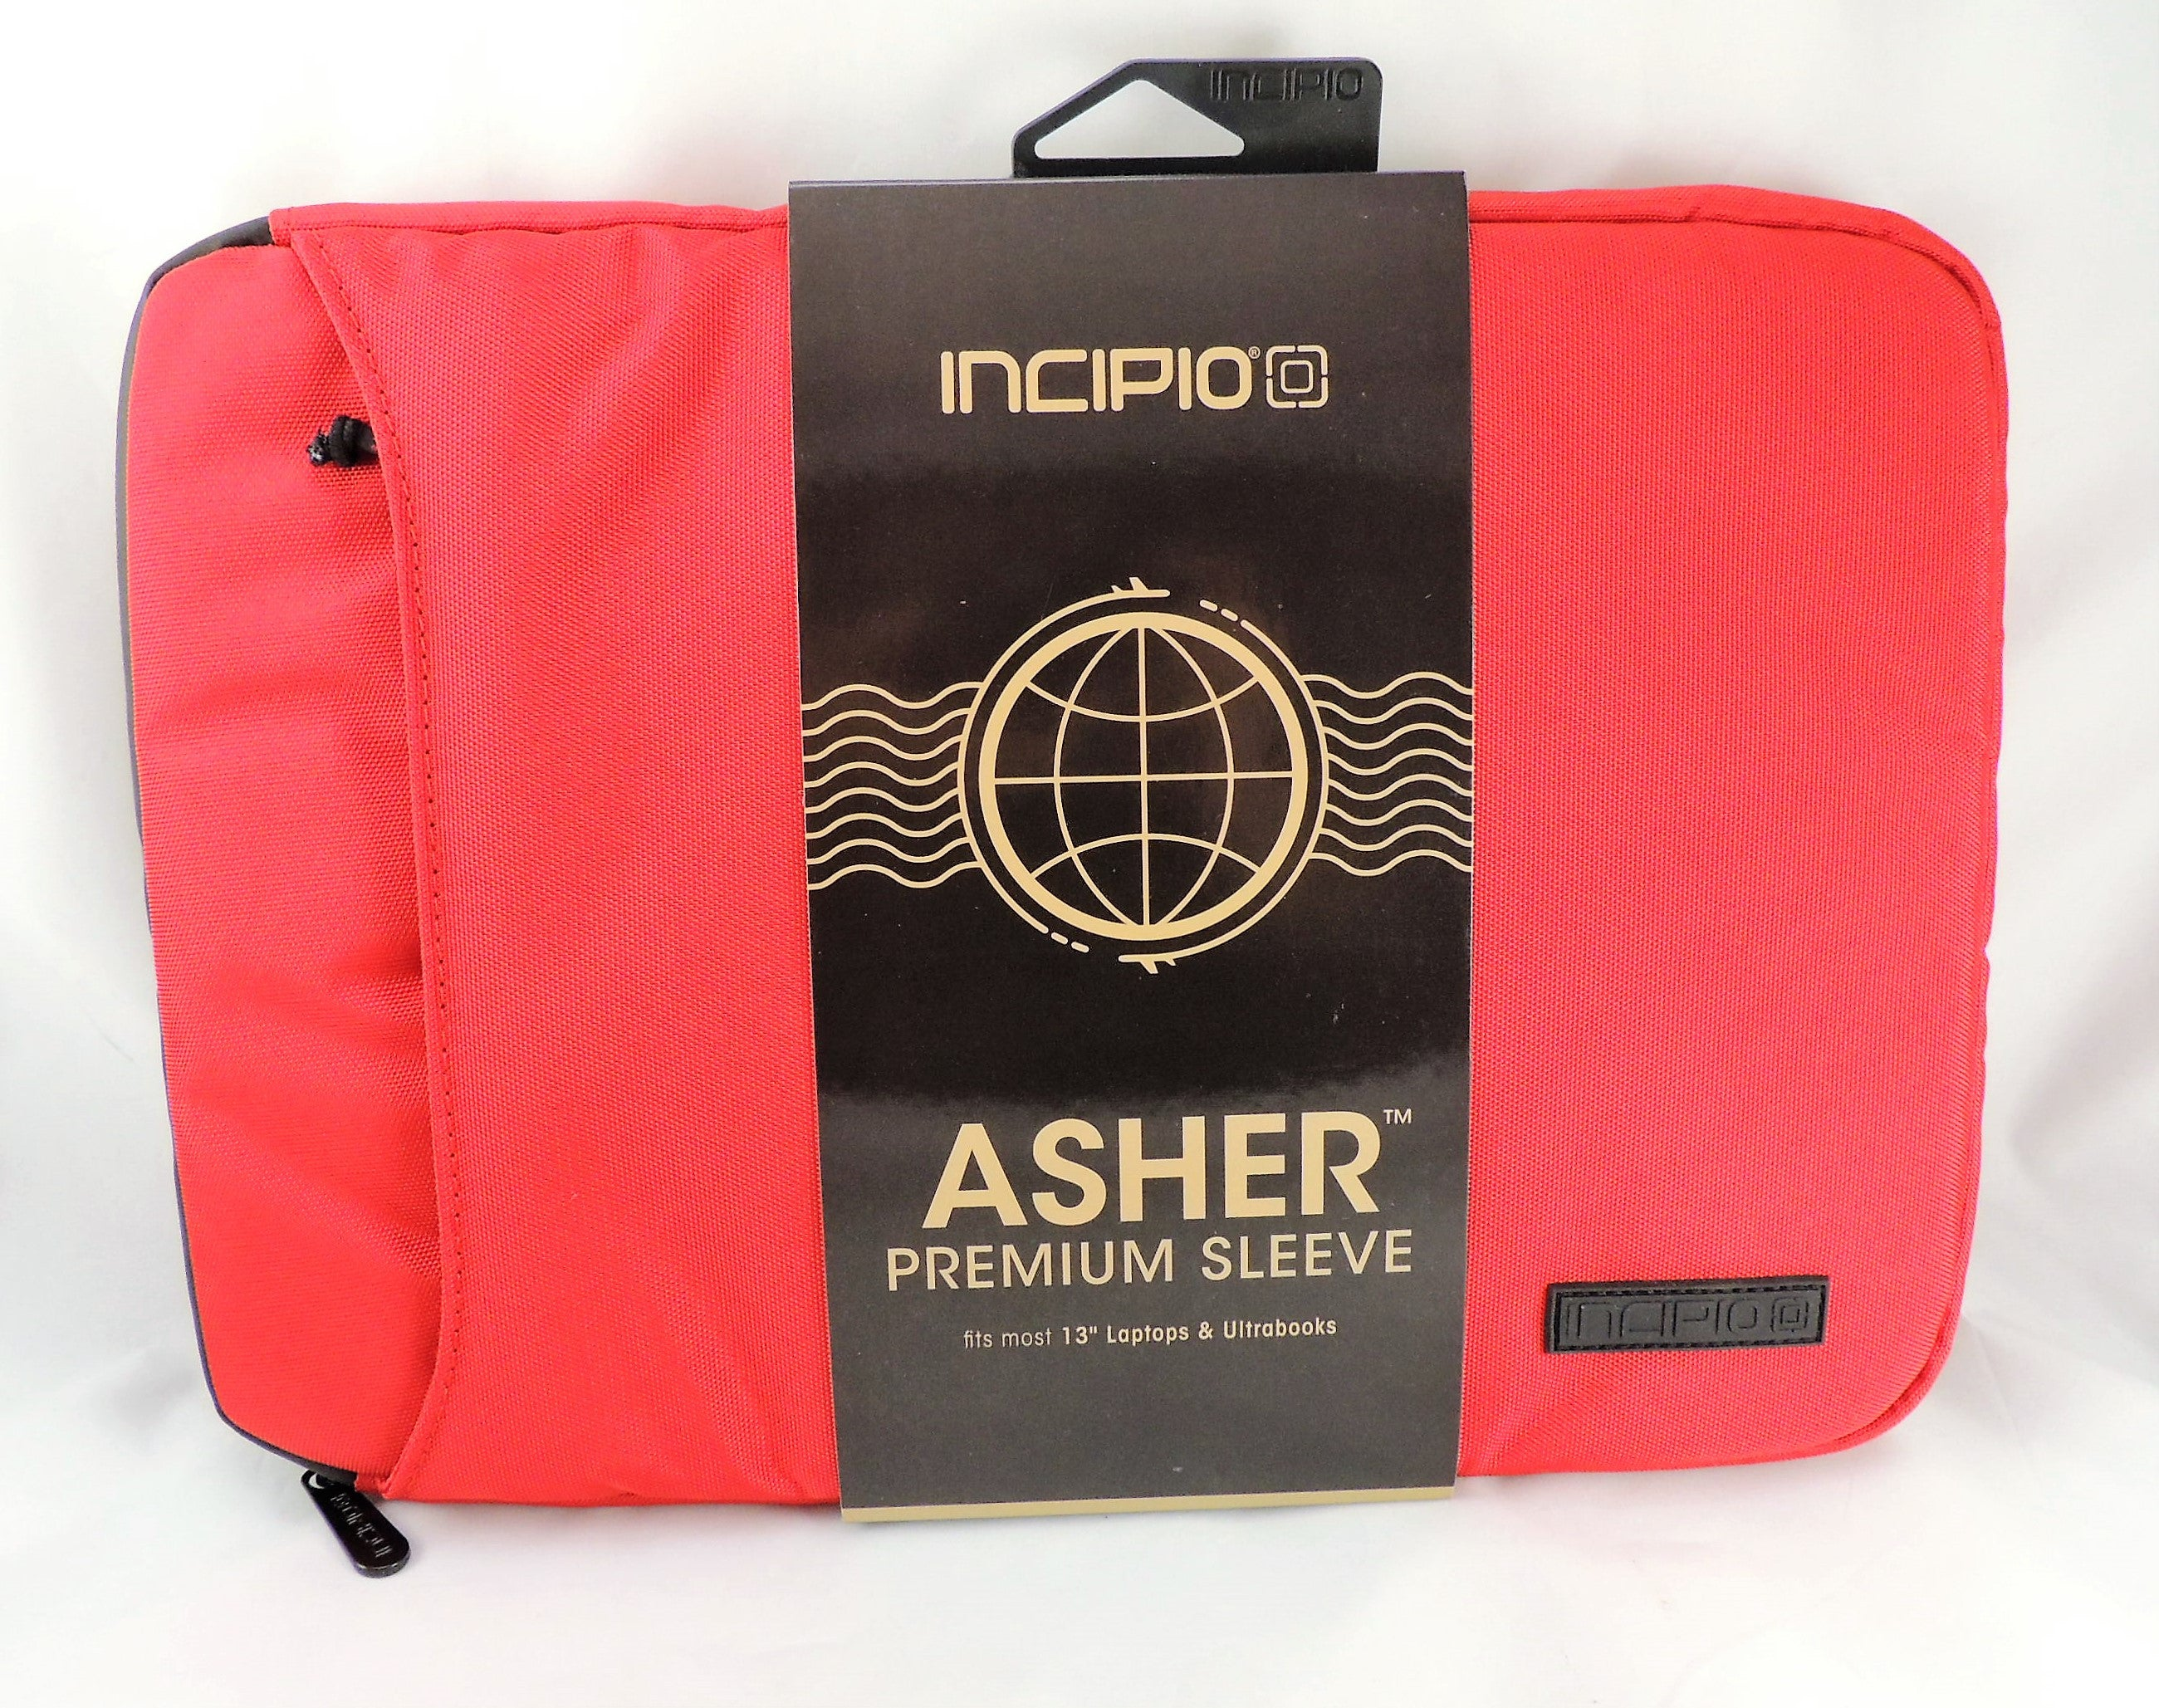 Incipio Asher 13 Inch Premium Tablet Laptop Sleeve Macbook Pro Surface 3 (Red)